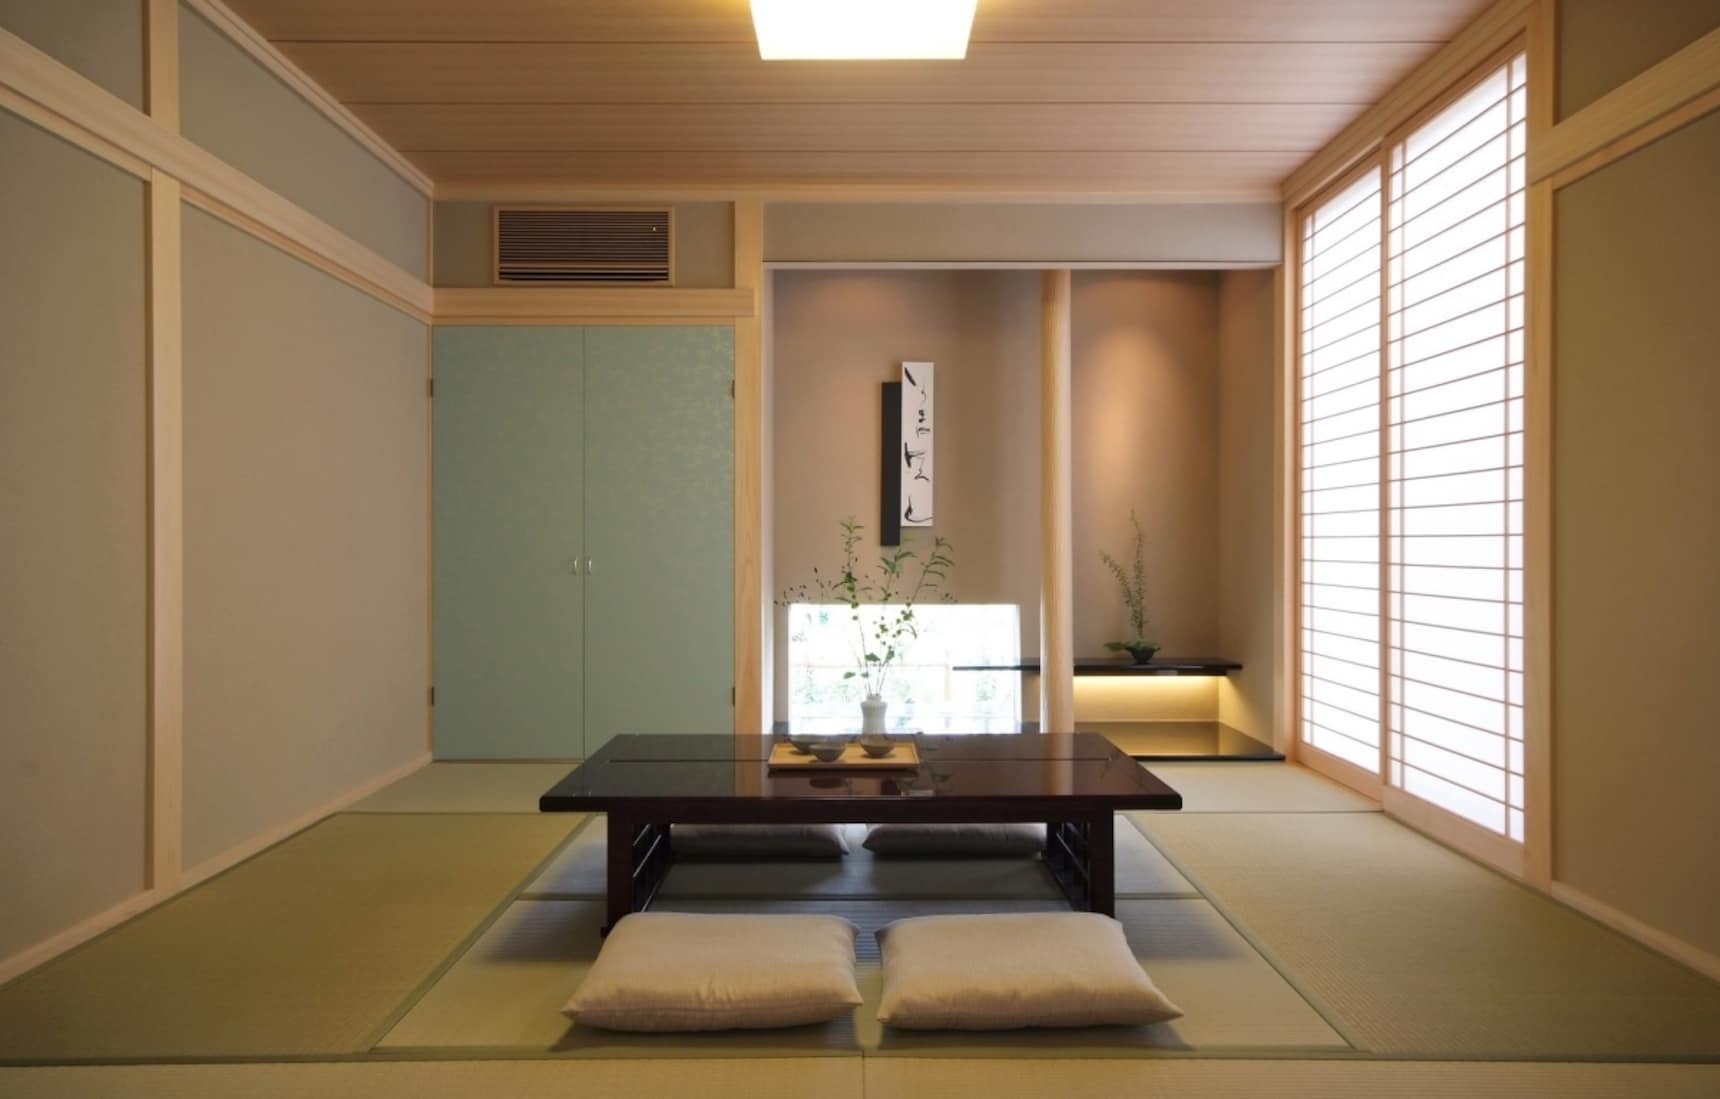 Glean the secrets of japanese interior design all about for Photo gallery of interior designs